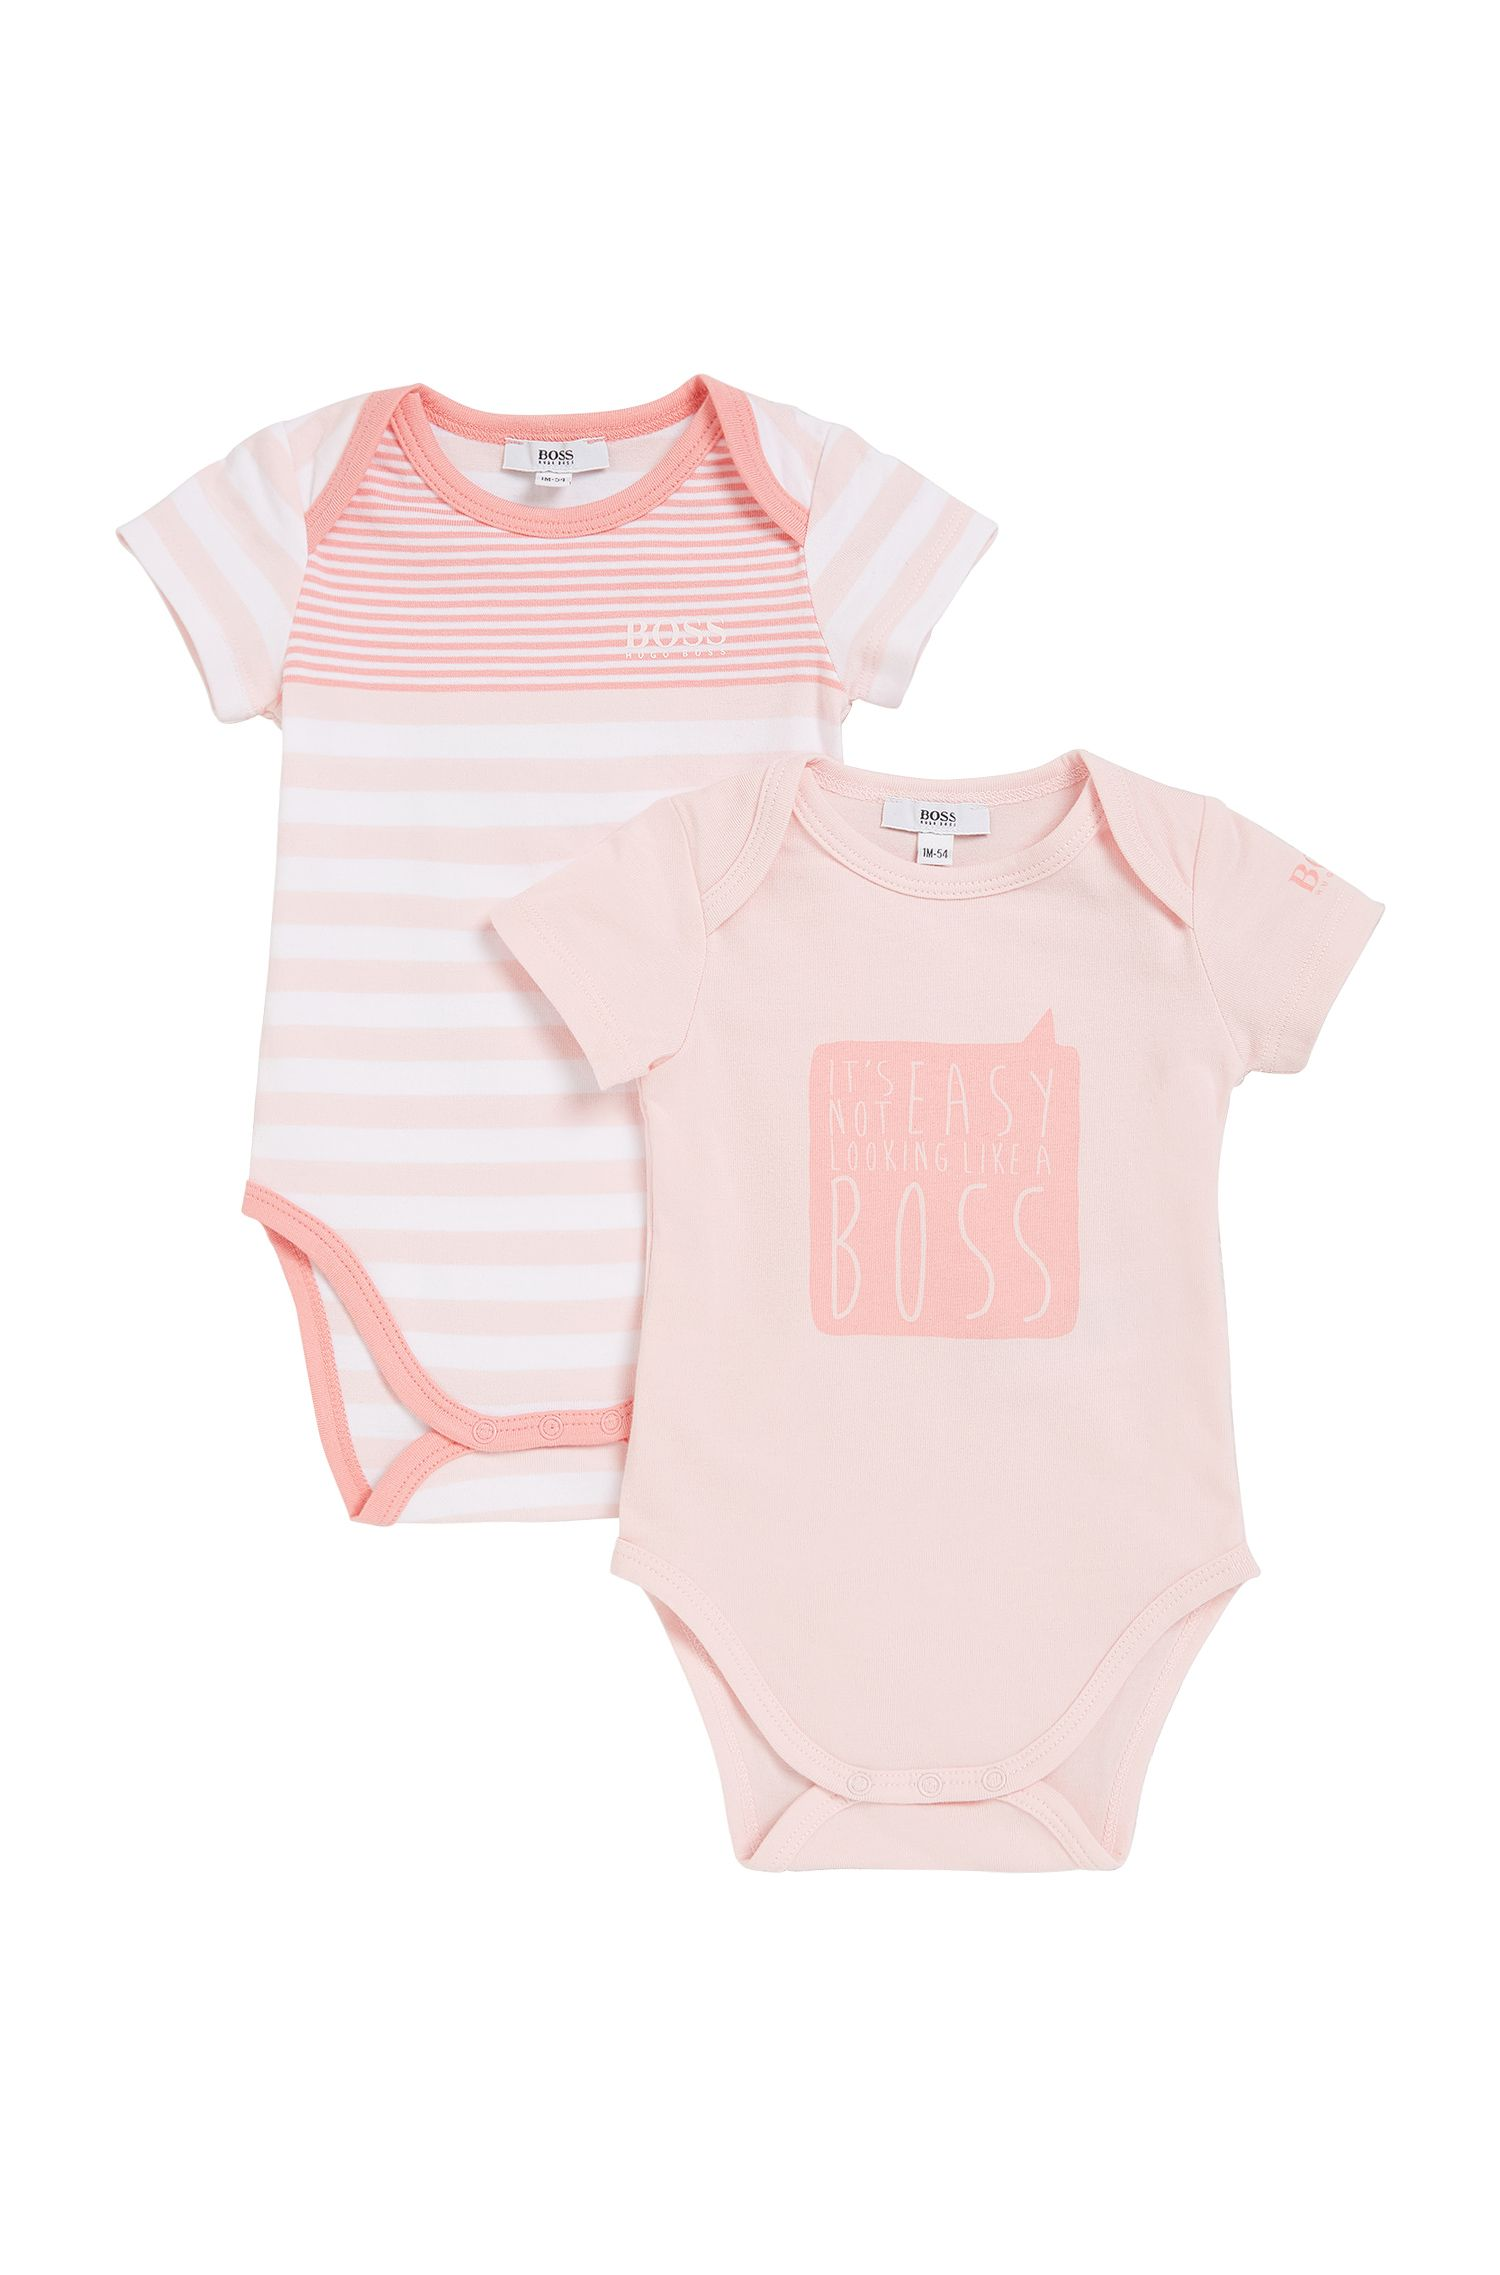 Baby two-pack of single-jersey bodysuits